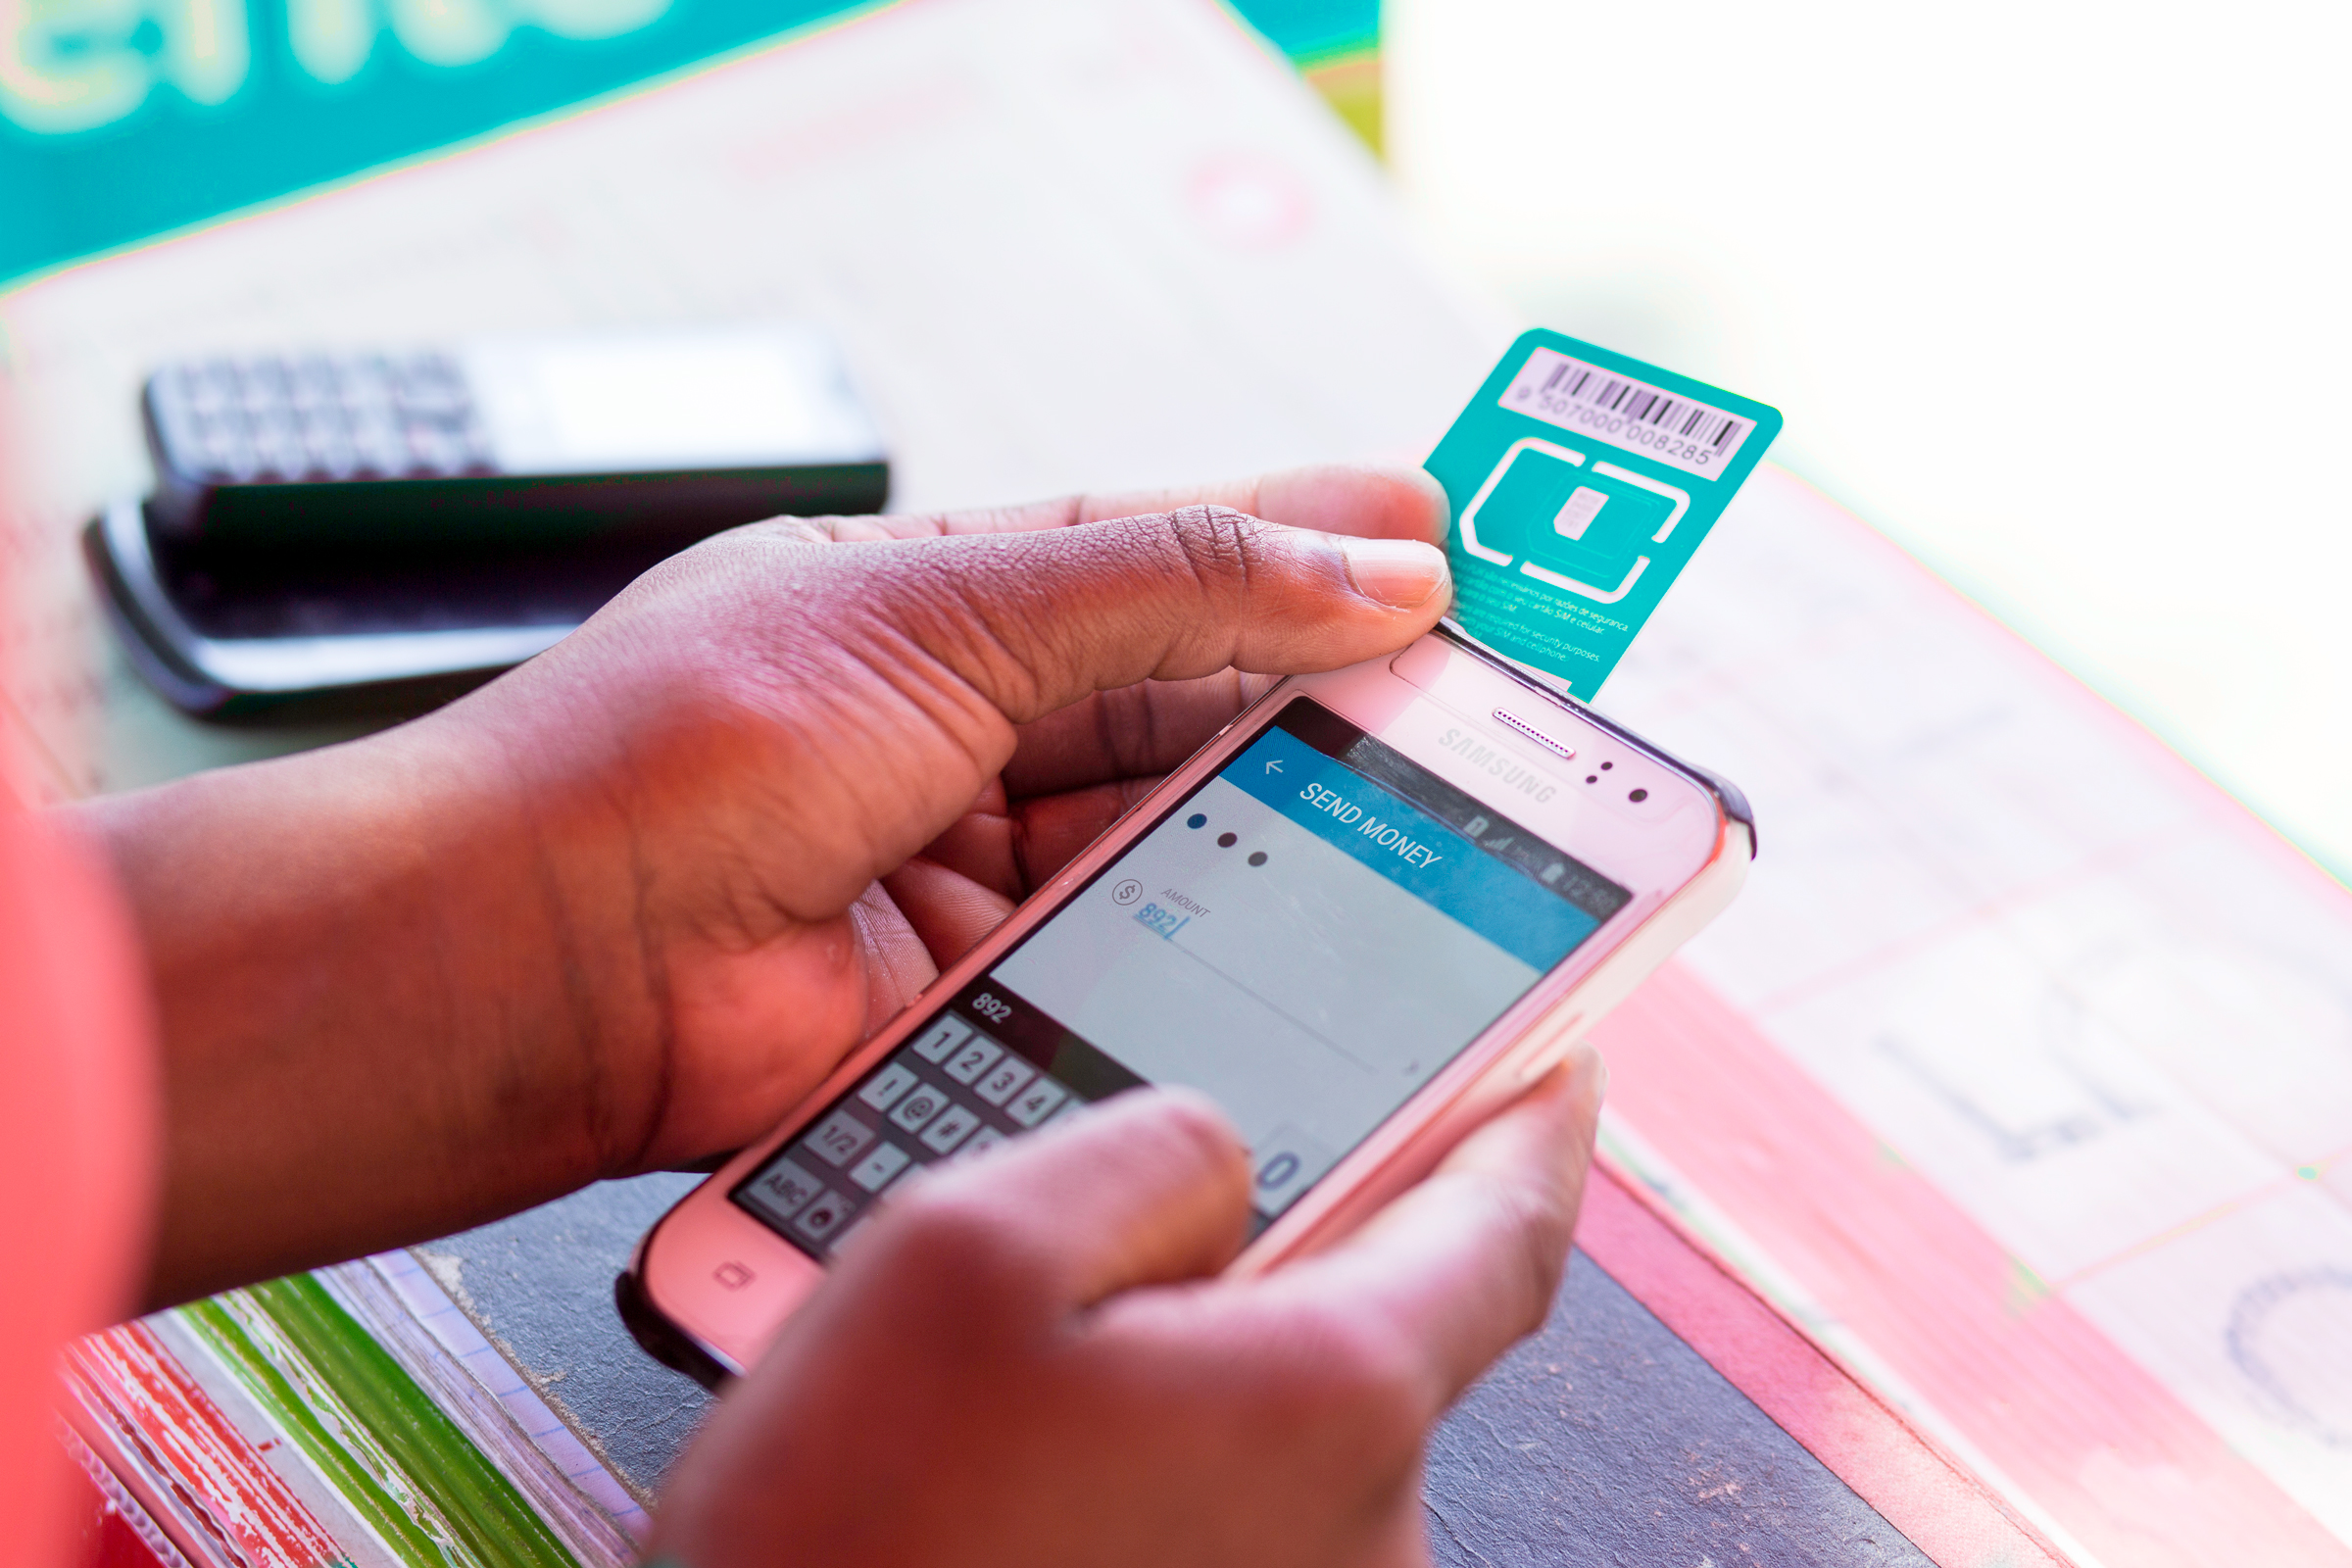 Improve the Mobile Money experience